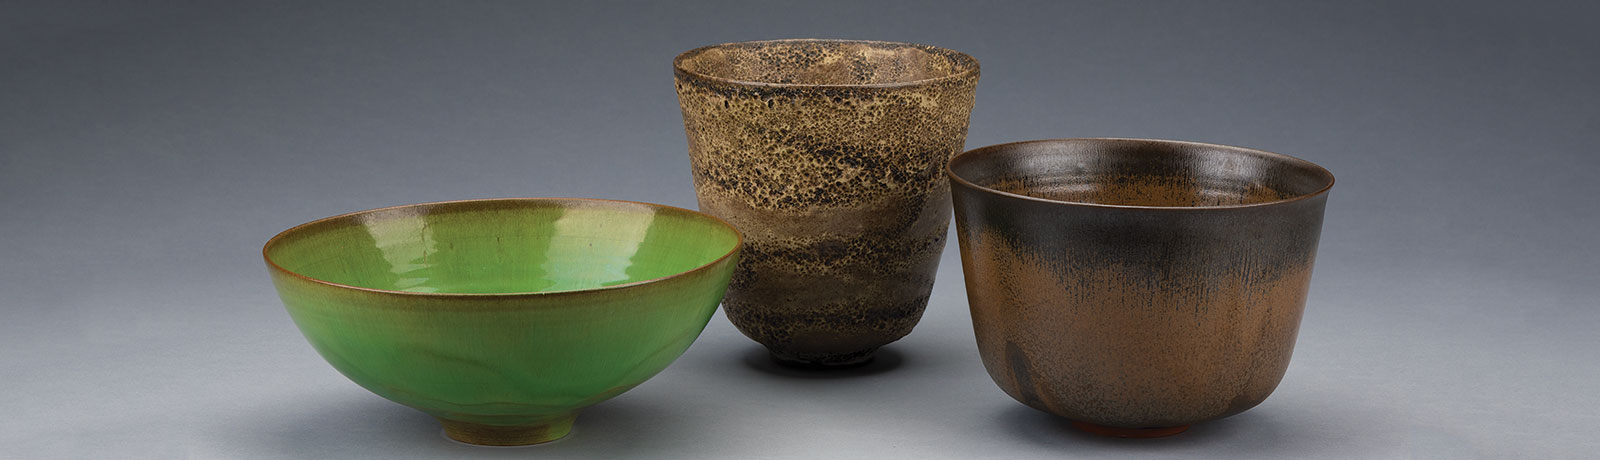 E. John Bullard's collection of American Studio Pottery from the latter half of the twentieth century is on display through May 13th.